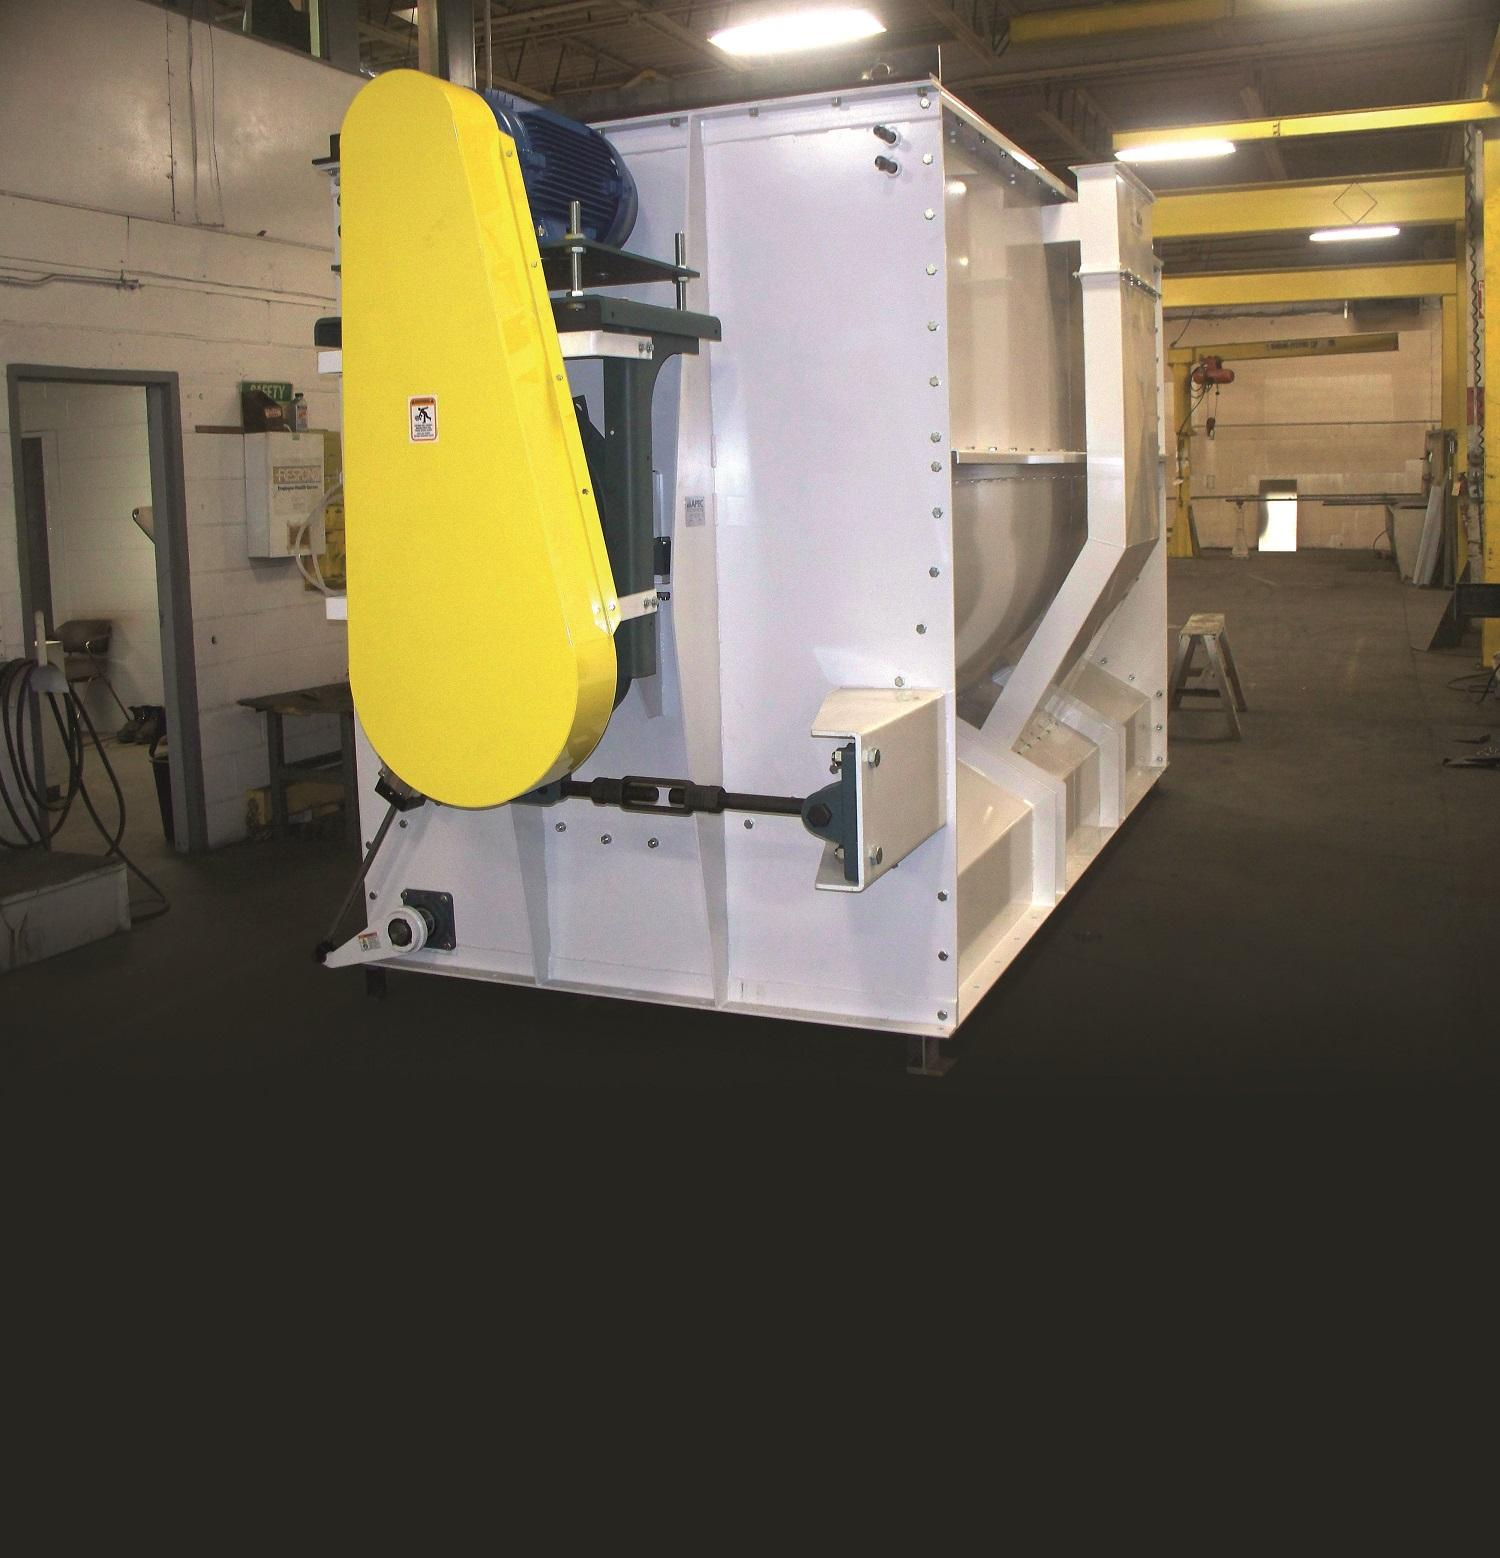 APEC's Horizontal Ribbon Mixer has been successfully used in a variety of industrial applications